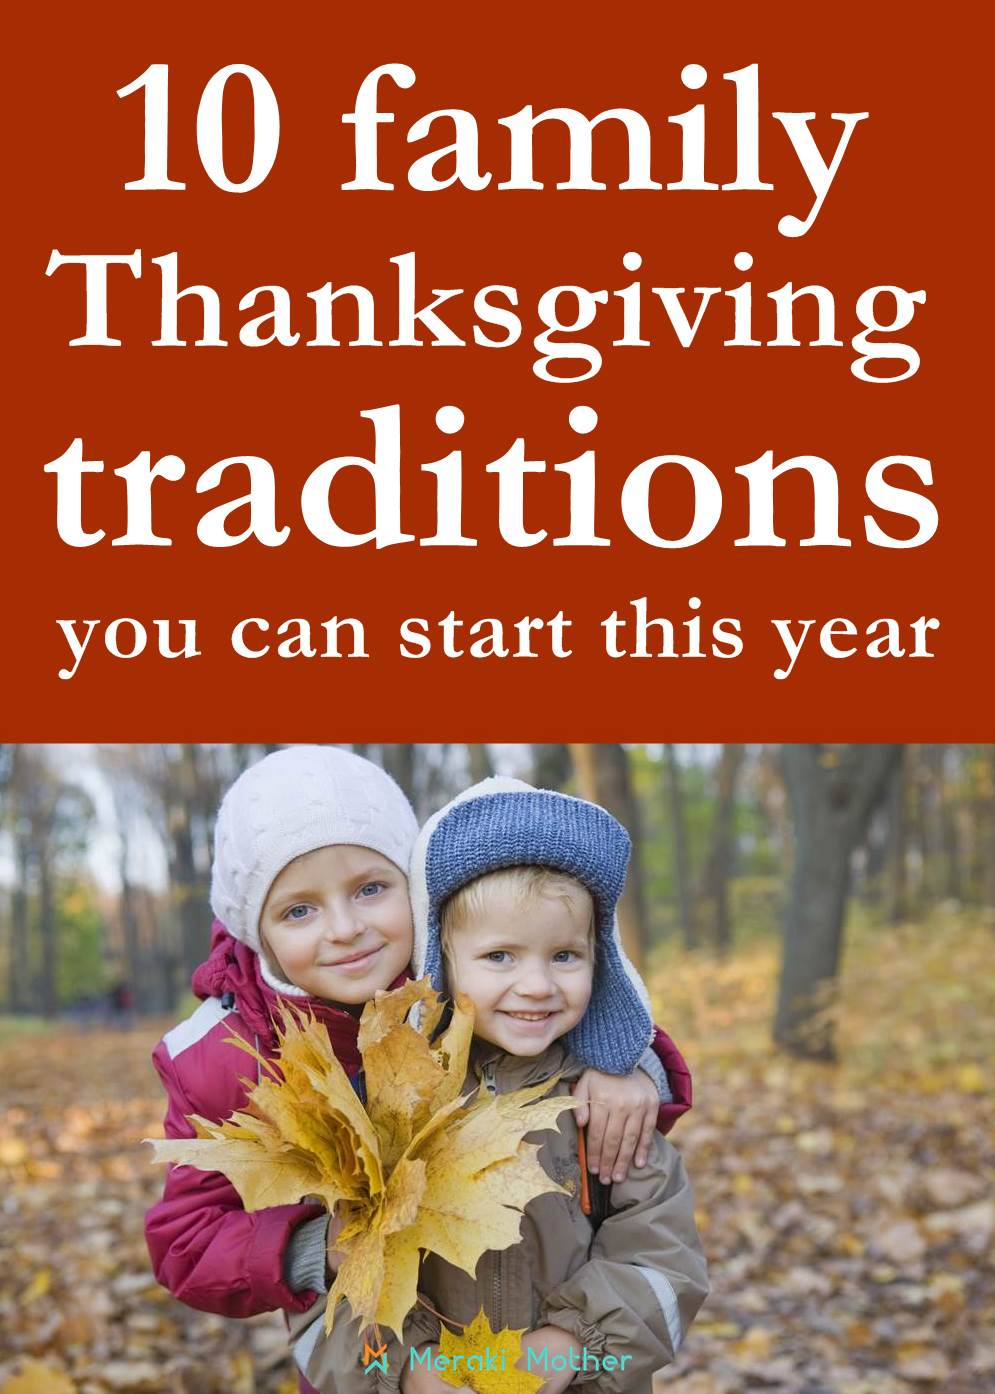 10 family Thanksgiving traditions